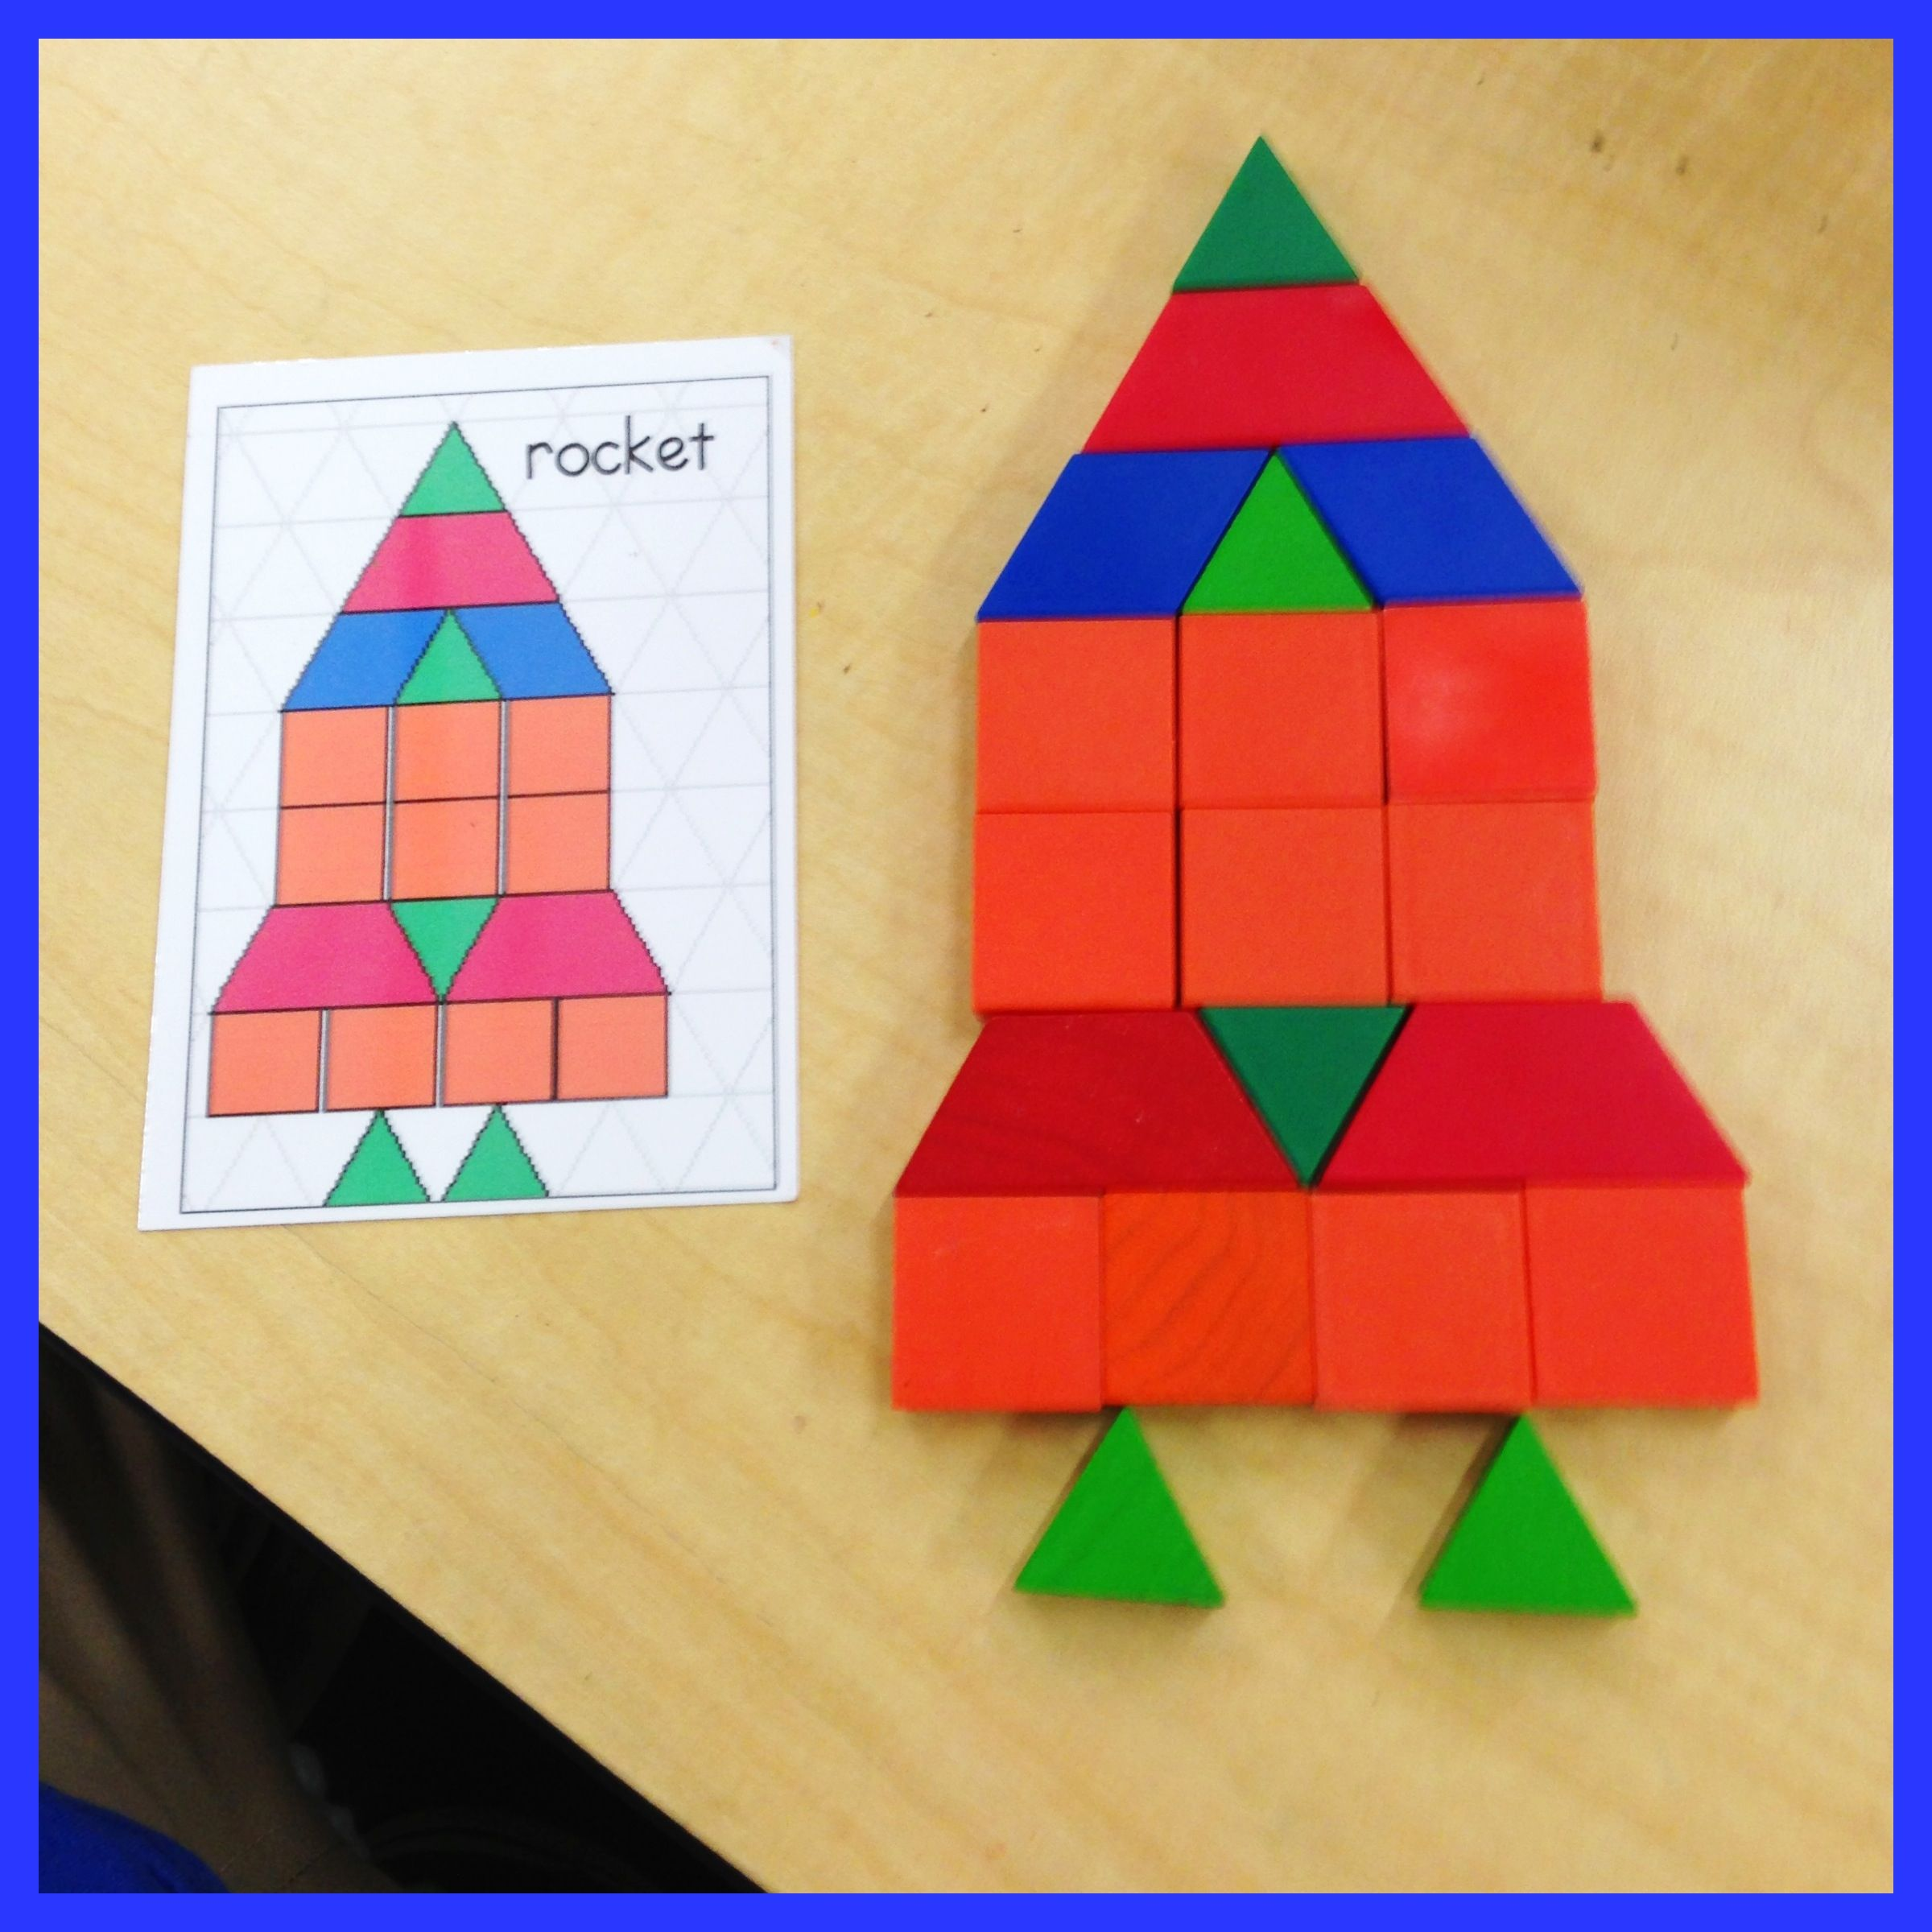 medium resolution of Construct using basic shapes \u0026 spatial reasoning to model objects in the  environment   Spatial concepts